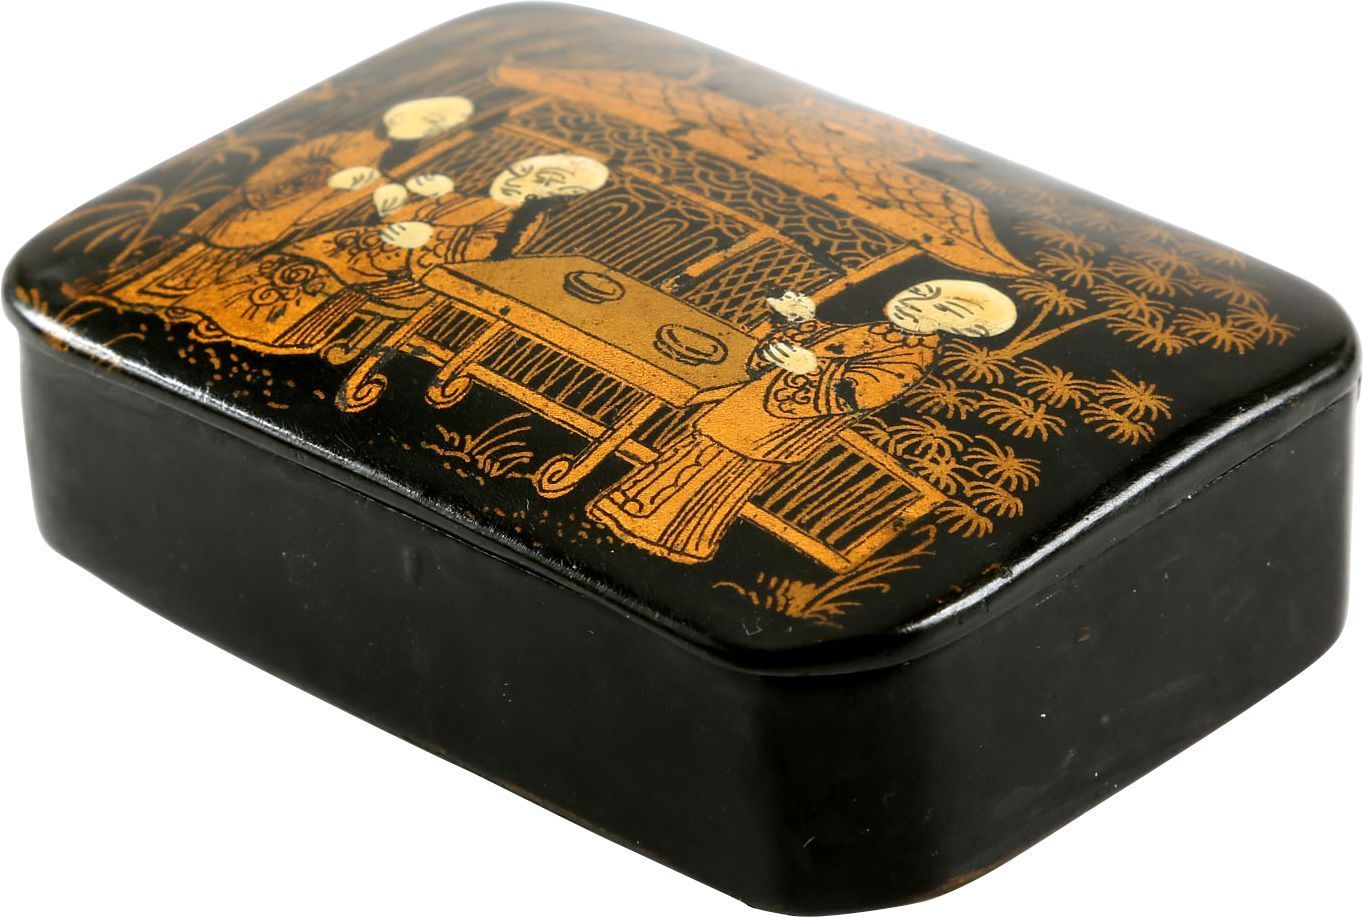 Colonial American Tobacco Box - Product